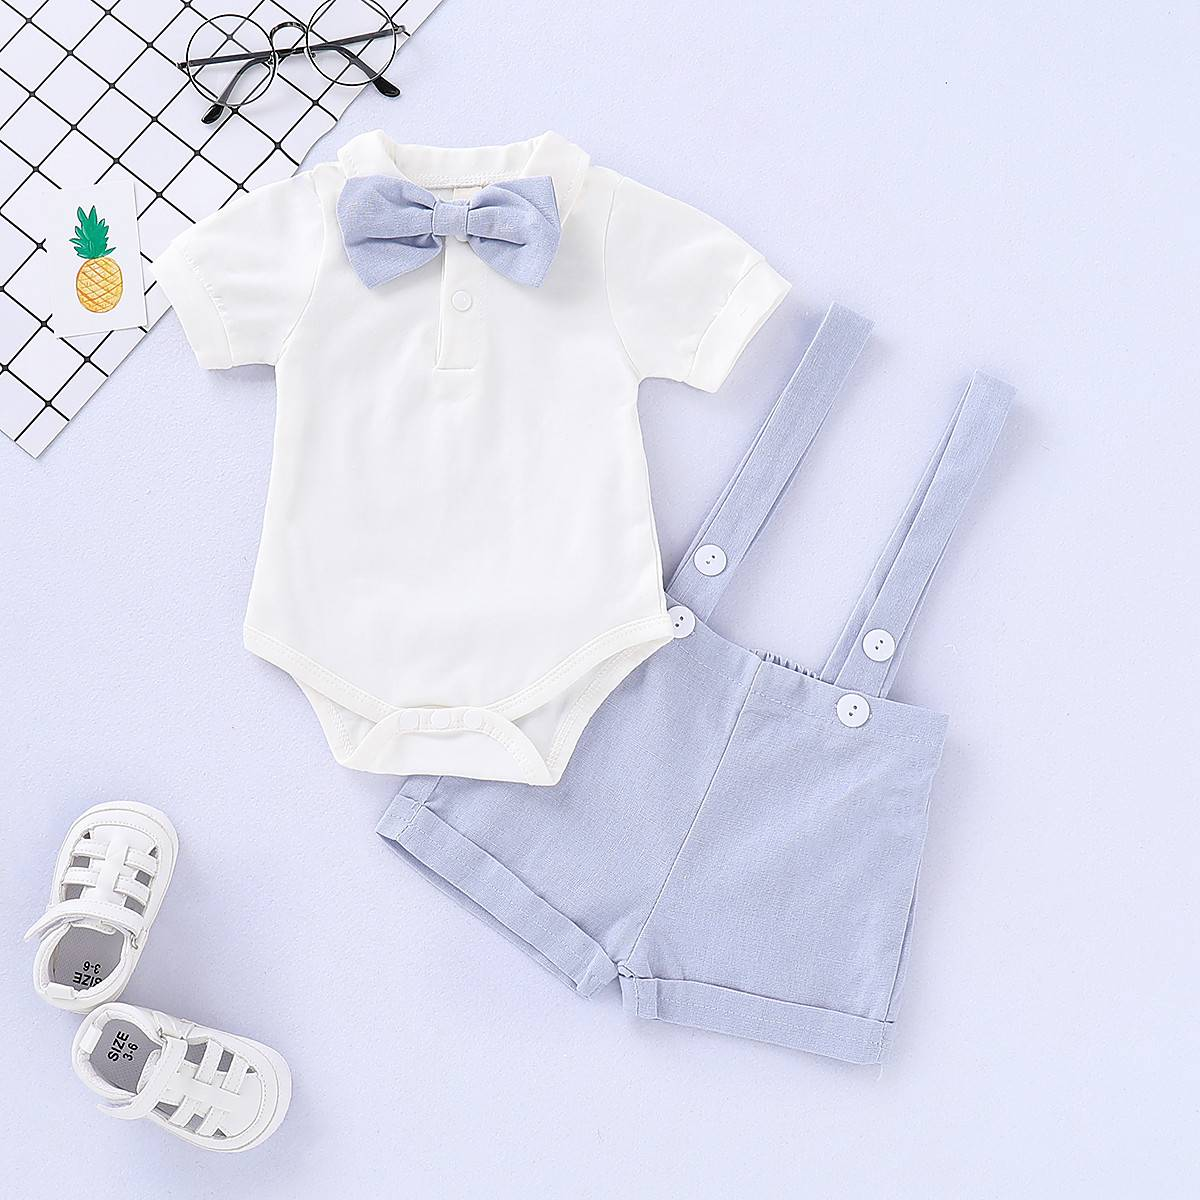 Falke Baby Erstling Ankle My First Socks White Sizes 0-1 month /& 1-6 months BNWB